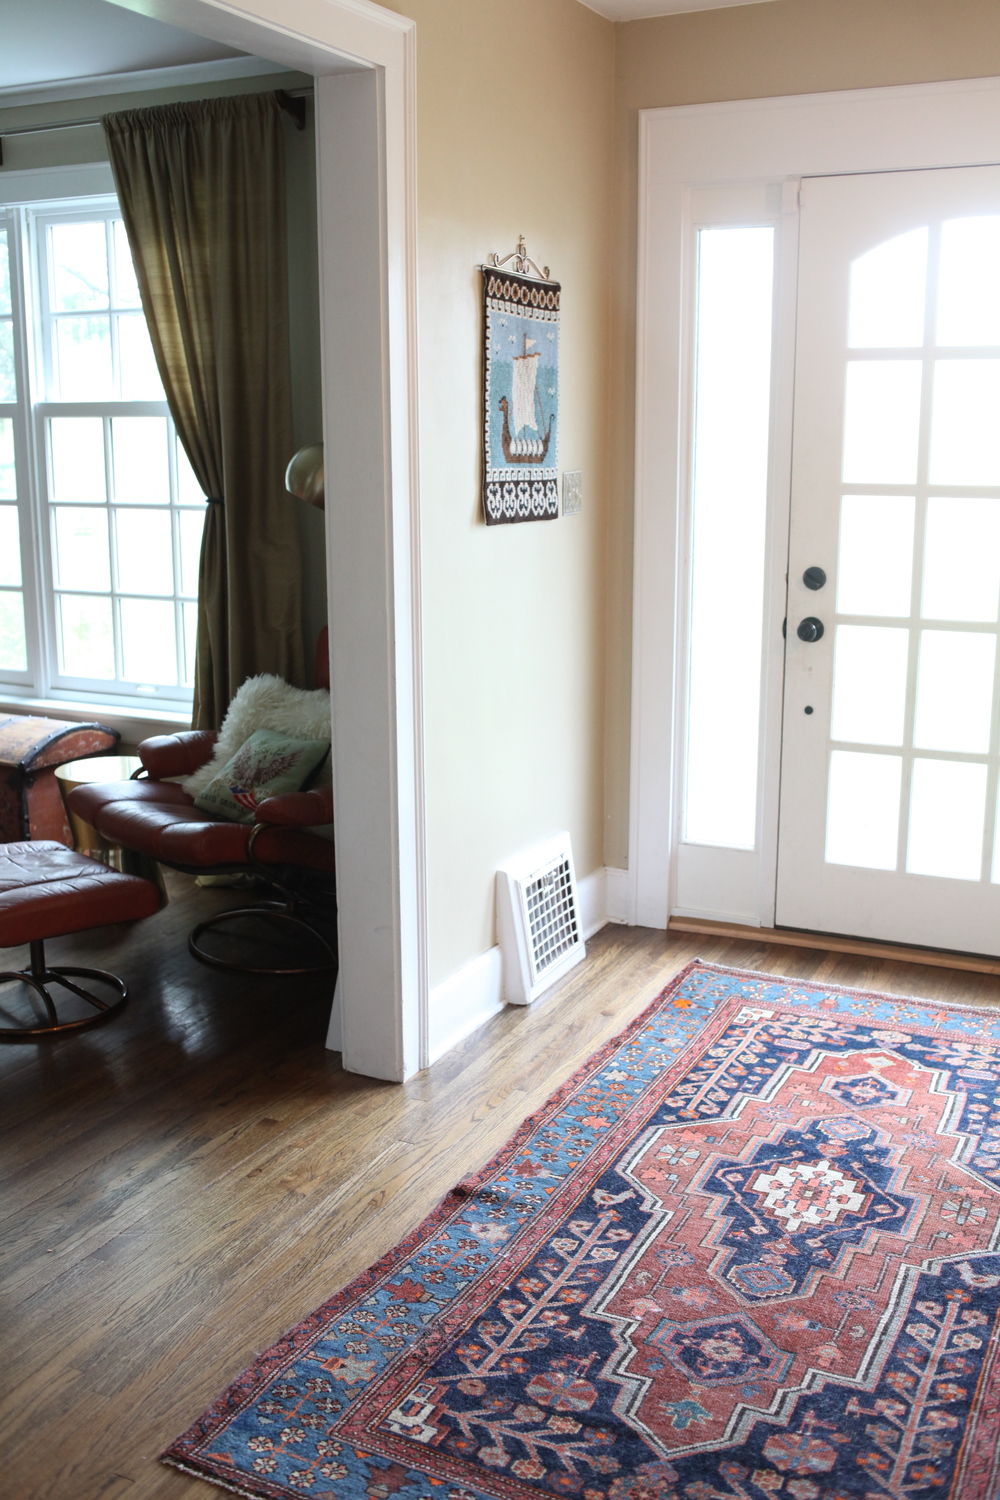 Modern Scandinavian Foyer with Persian rug and needlepoint